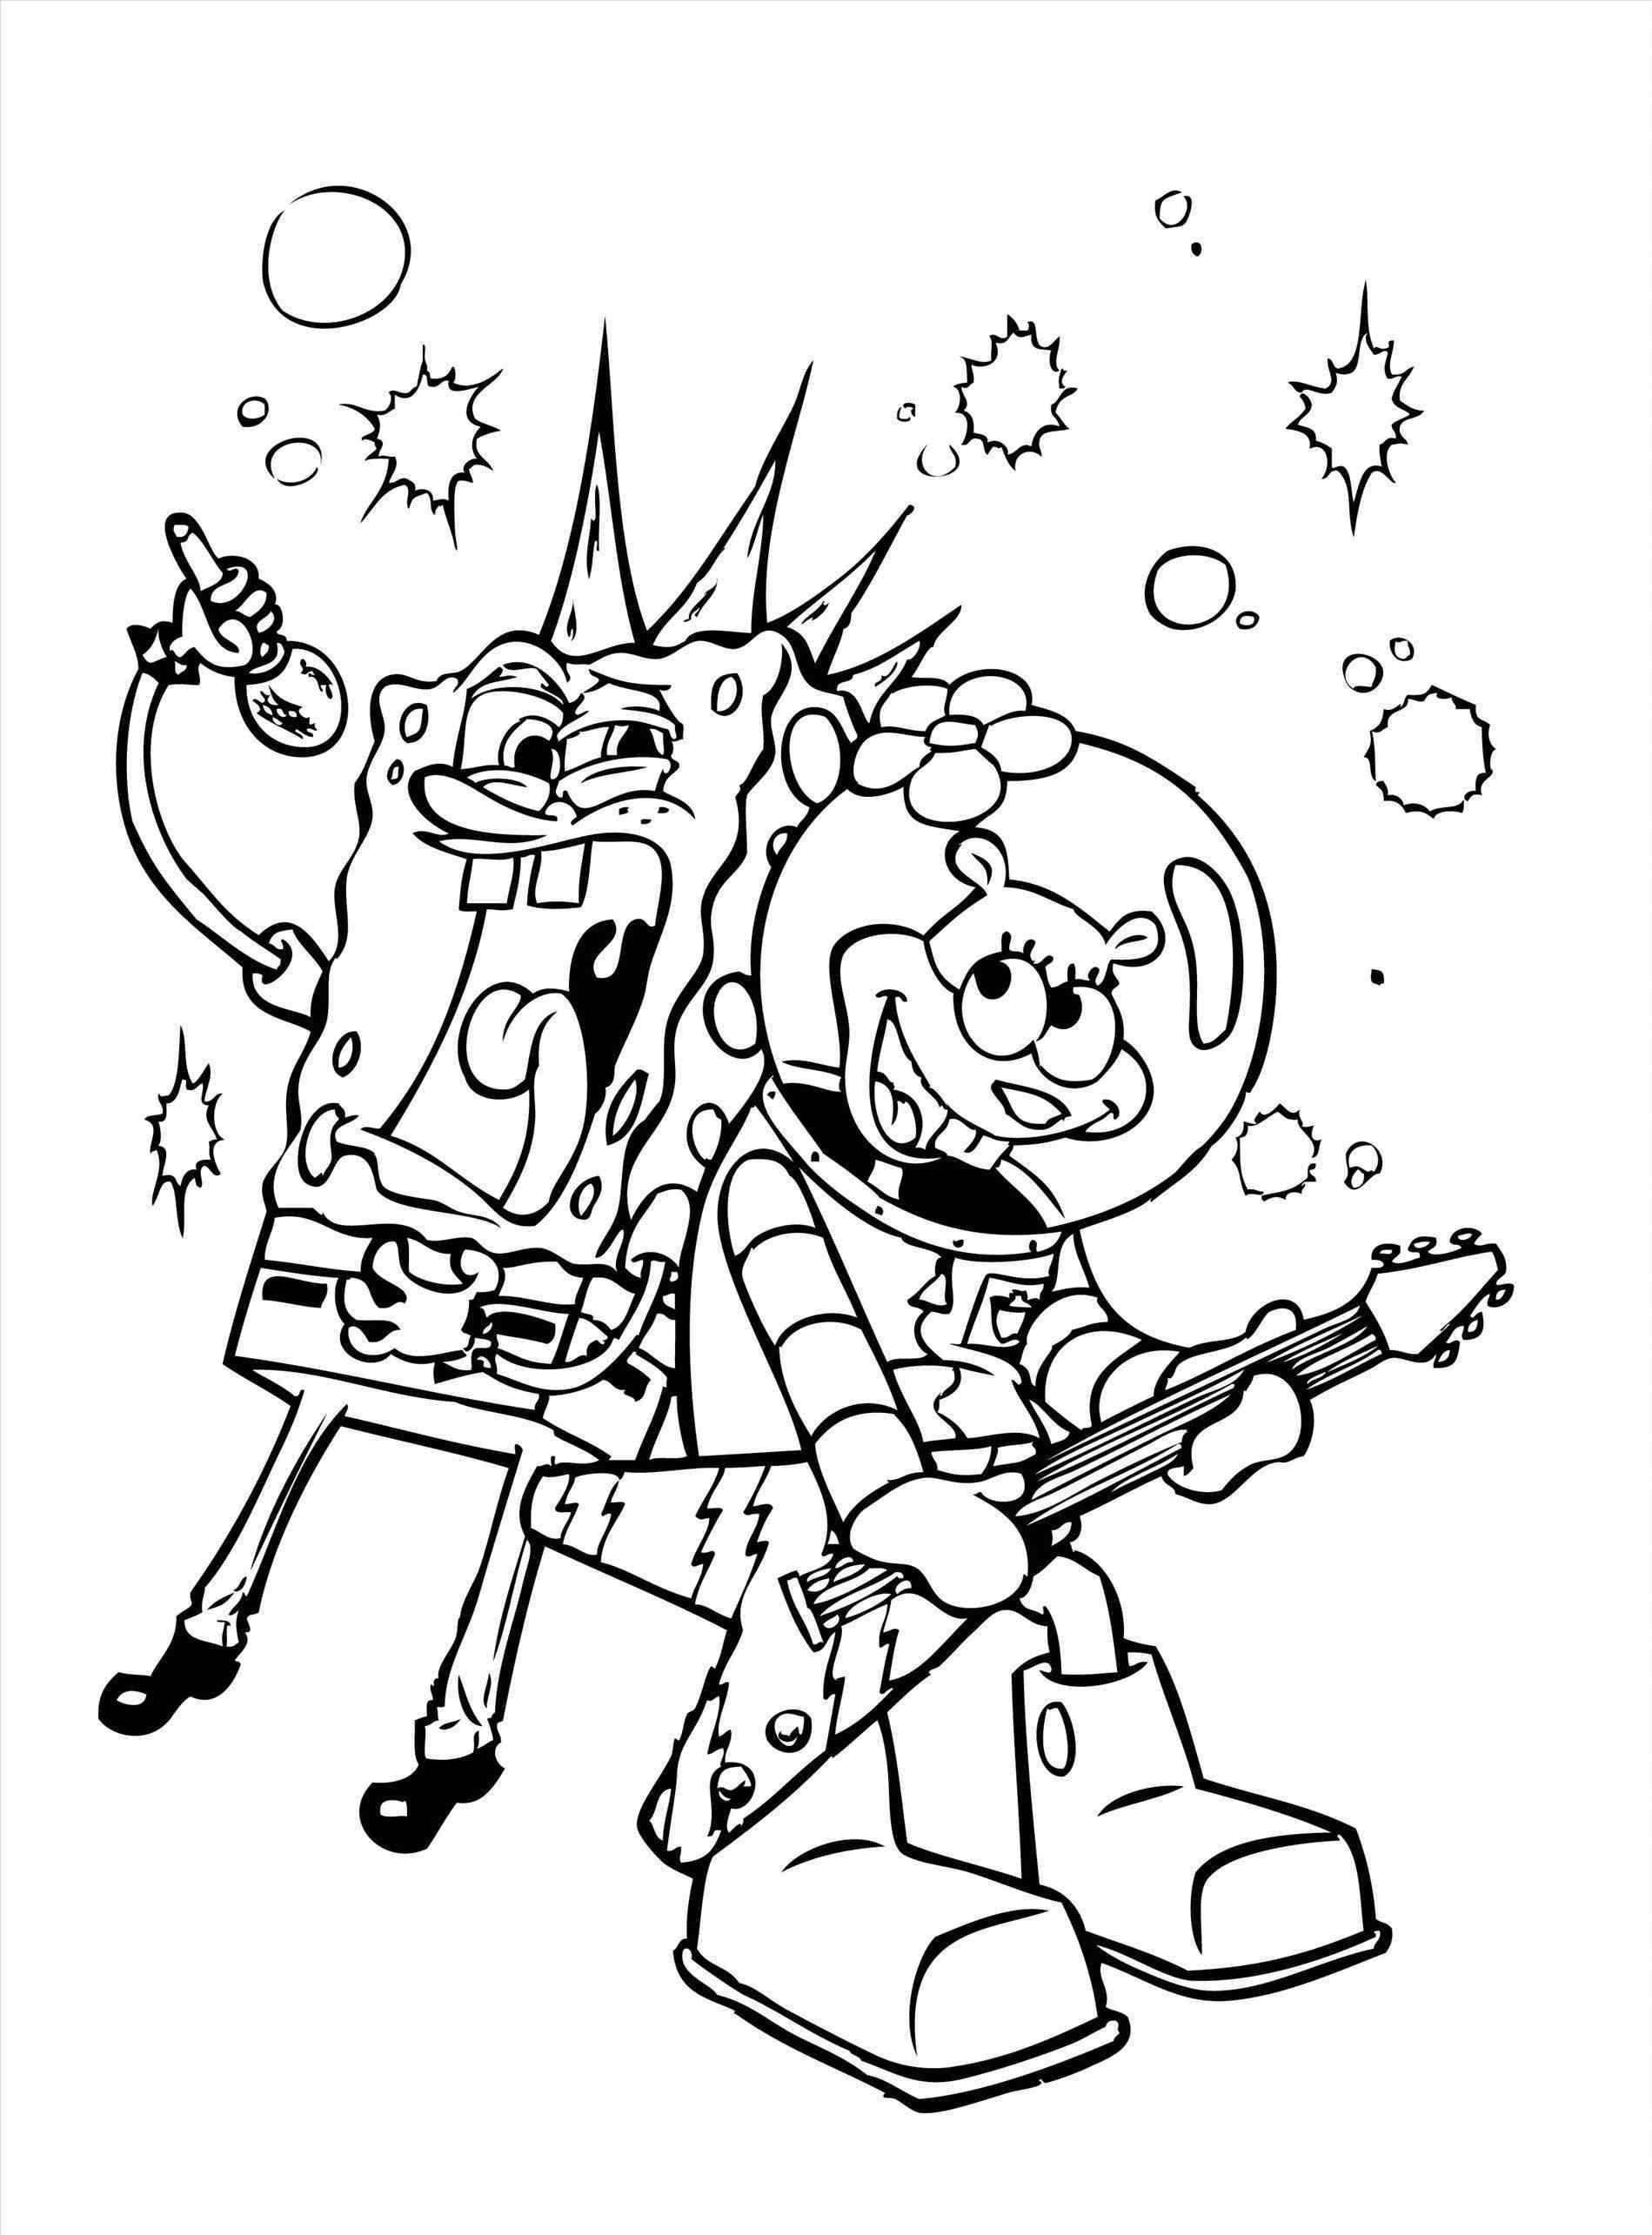 Spongebob Valentines Day Coloring Pages